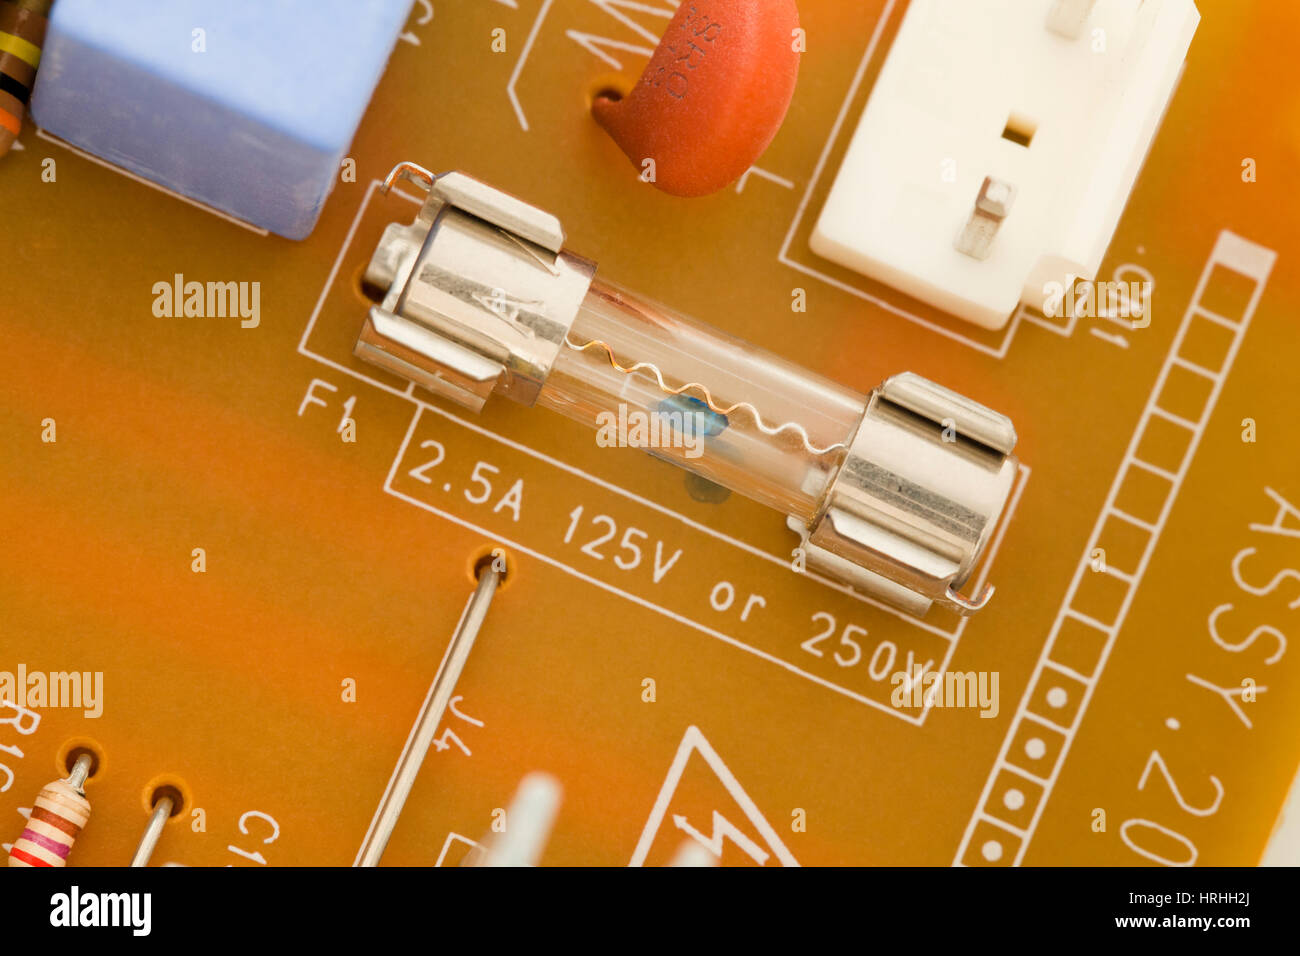 Electronic power supply CPB fuse (125v / 250v) - Stock Image